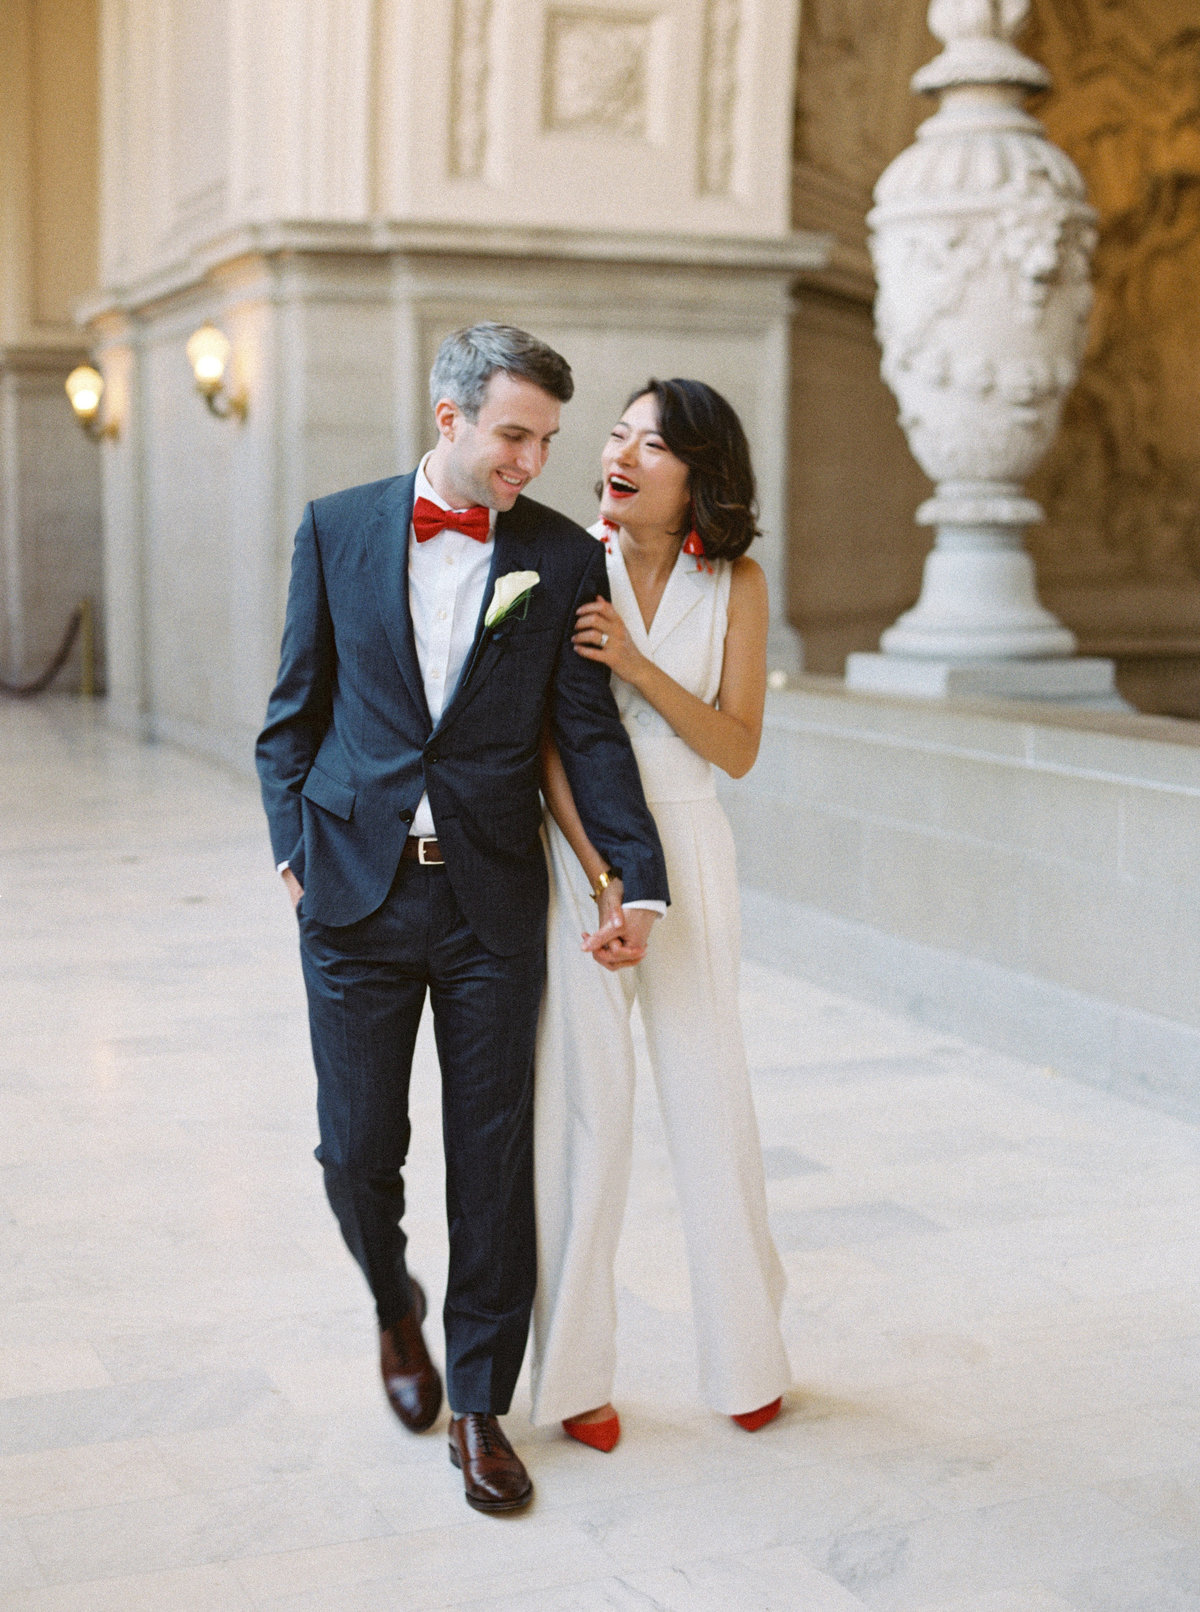 Judy + Greg San Francisco City Hall Wedding - Cassie Valente Photography 0020